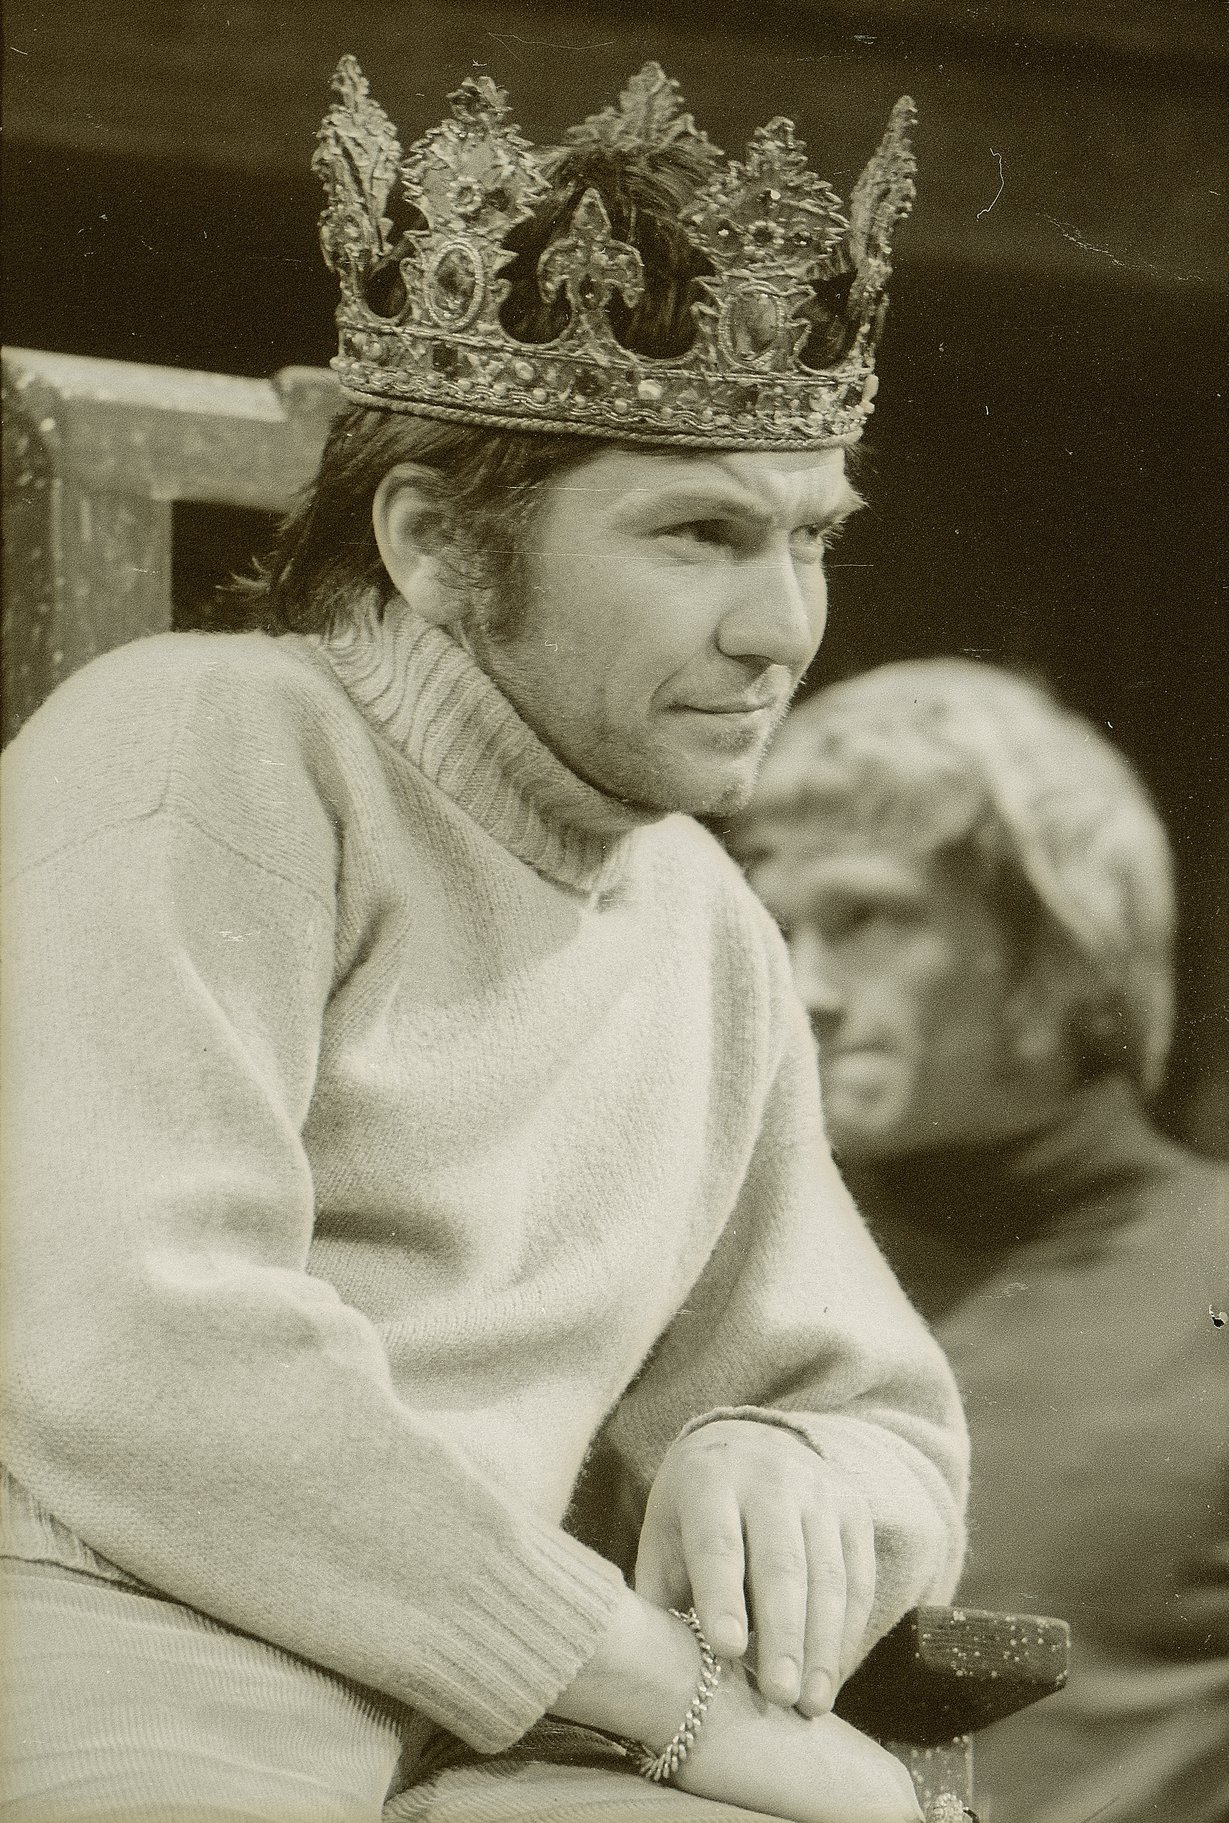 Michael Williams as Henry V, wears a casual jumper and crown, leaning on the arm of the wooden throne he is sitting in, in the 1971 production of Henry V